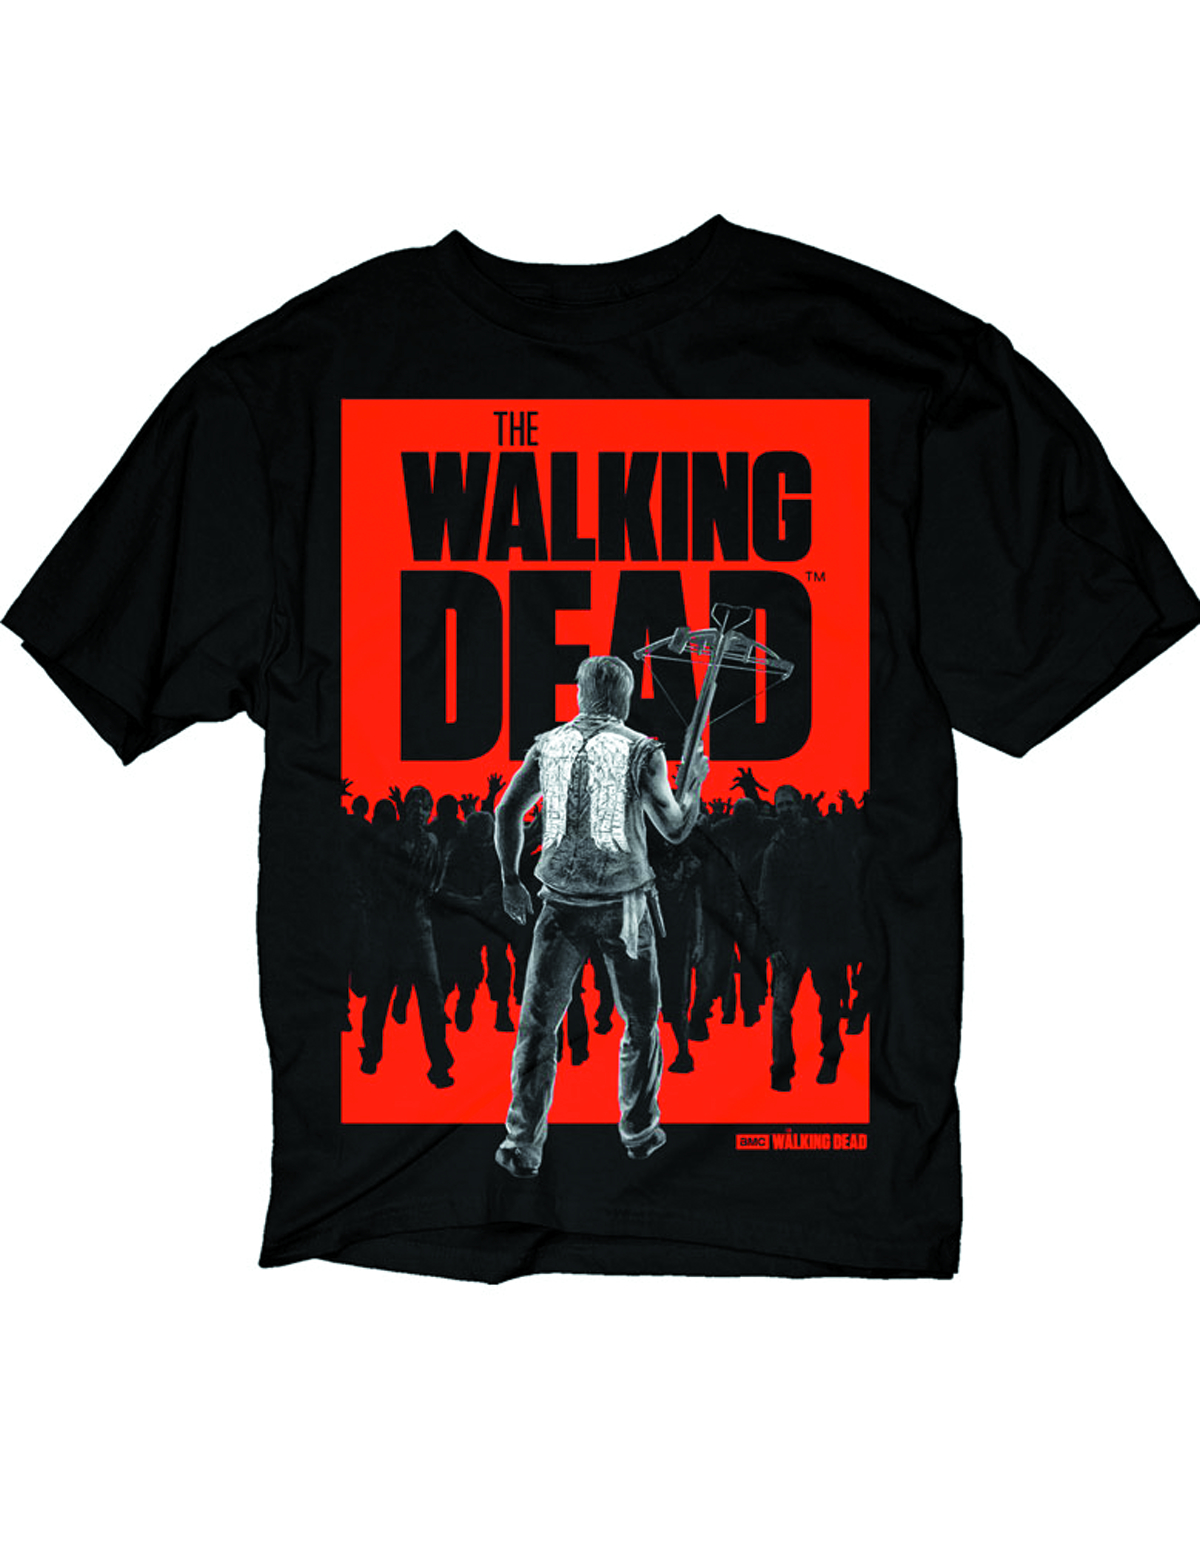 WALKING DEAD DARYL WALKER PX BLK T/S XL